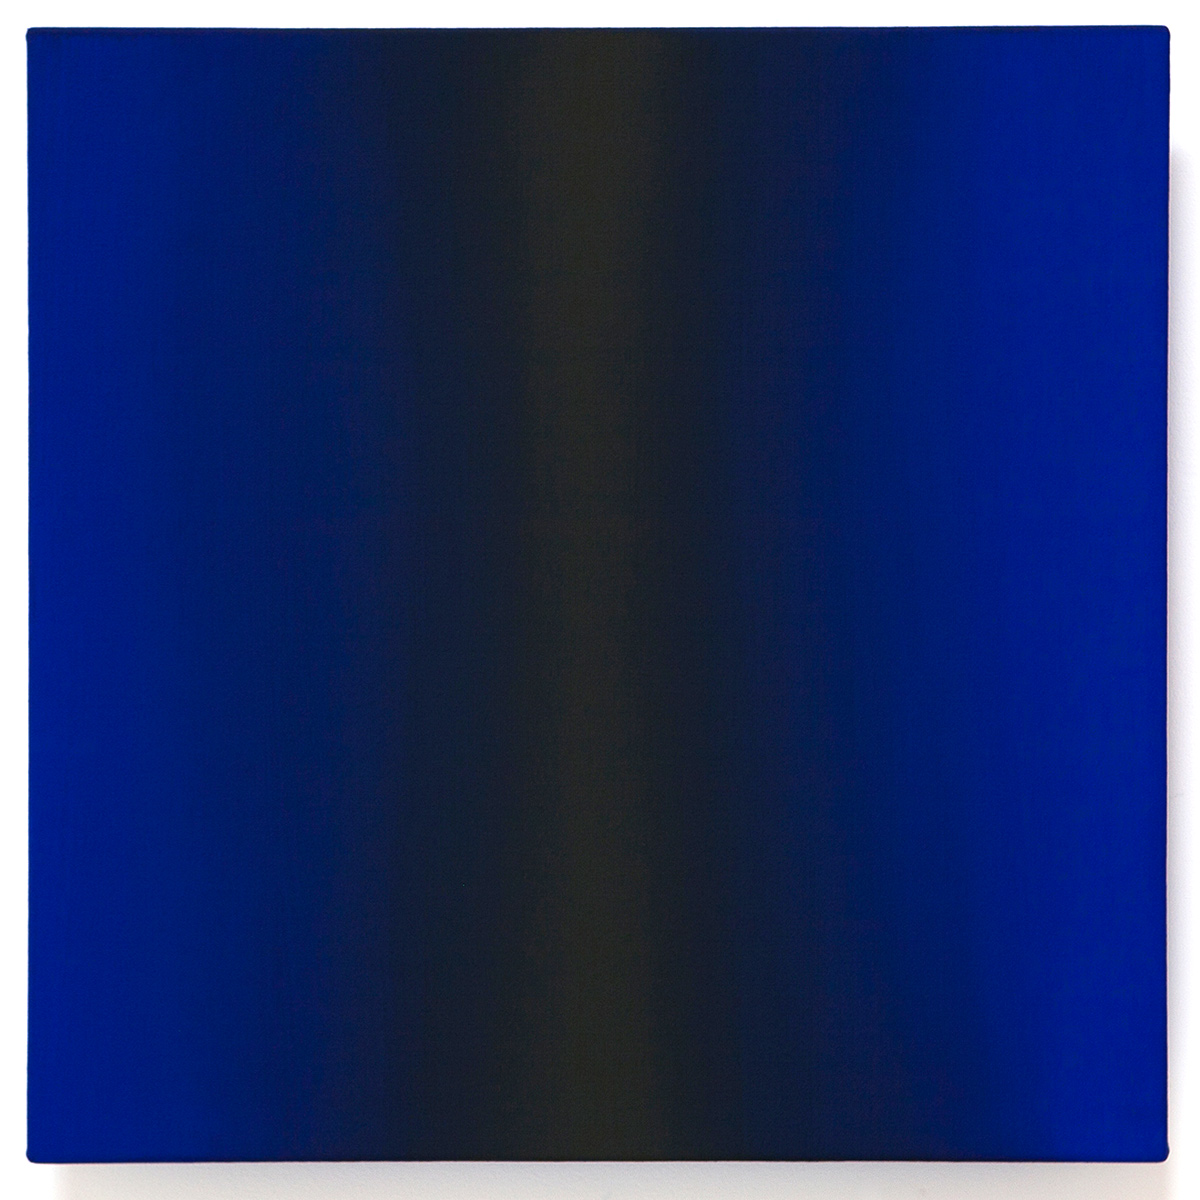 Delight (Blue Orange), Present Fugitive Series, 2010, oil on canvas on custom beveled stretcher, 24 x 24 x 3 in. (61 x 61 x 7 cm.)